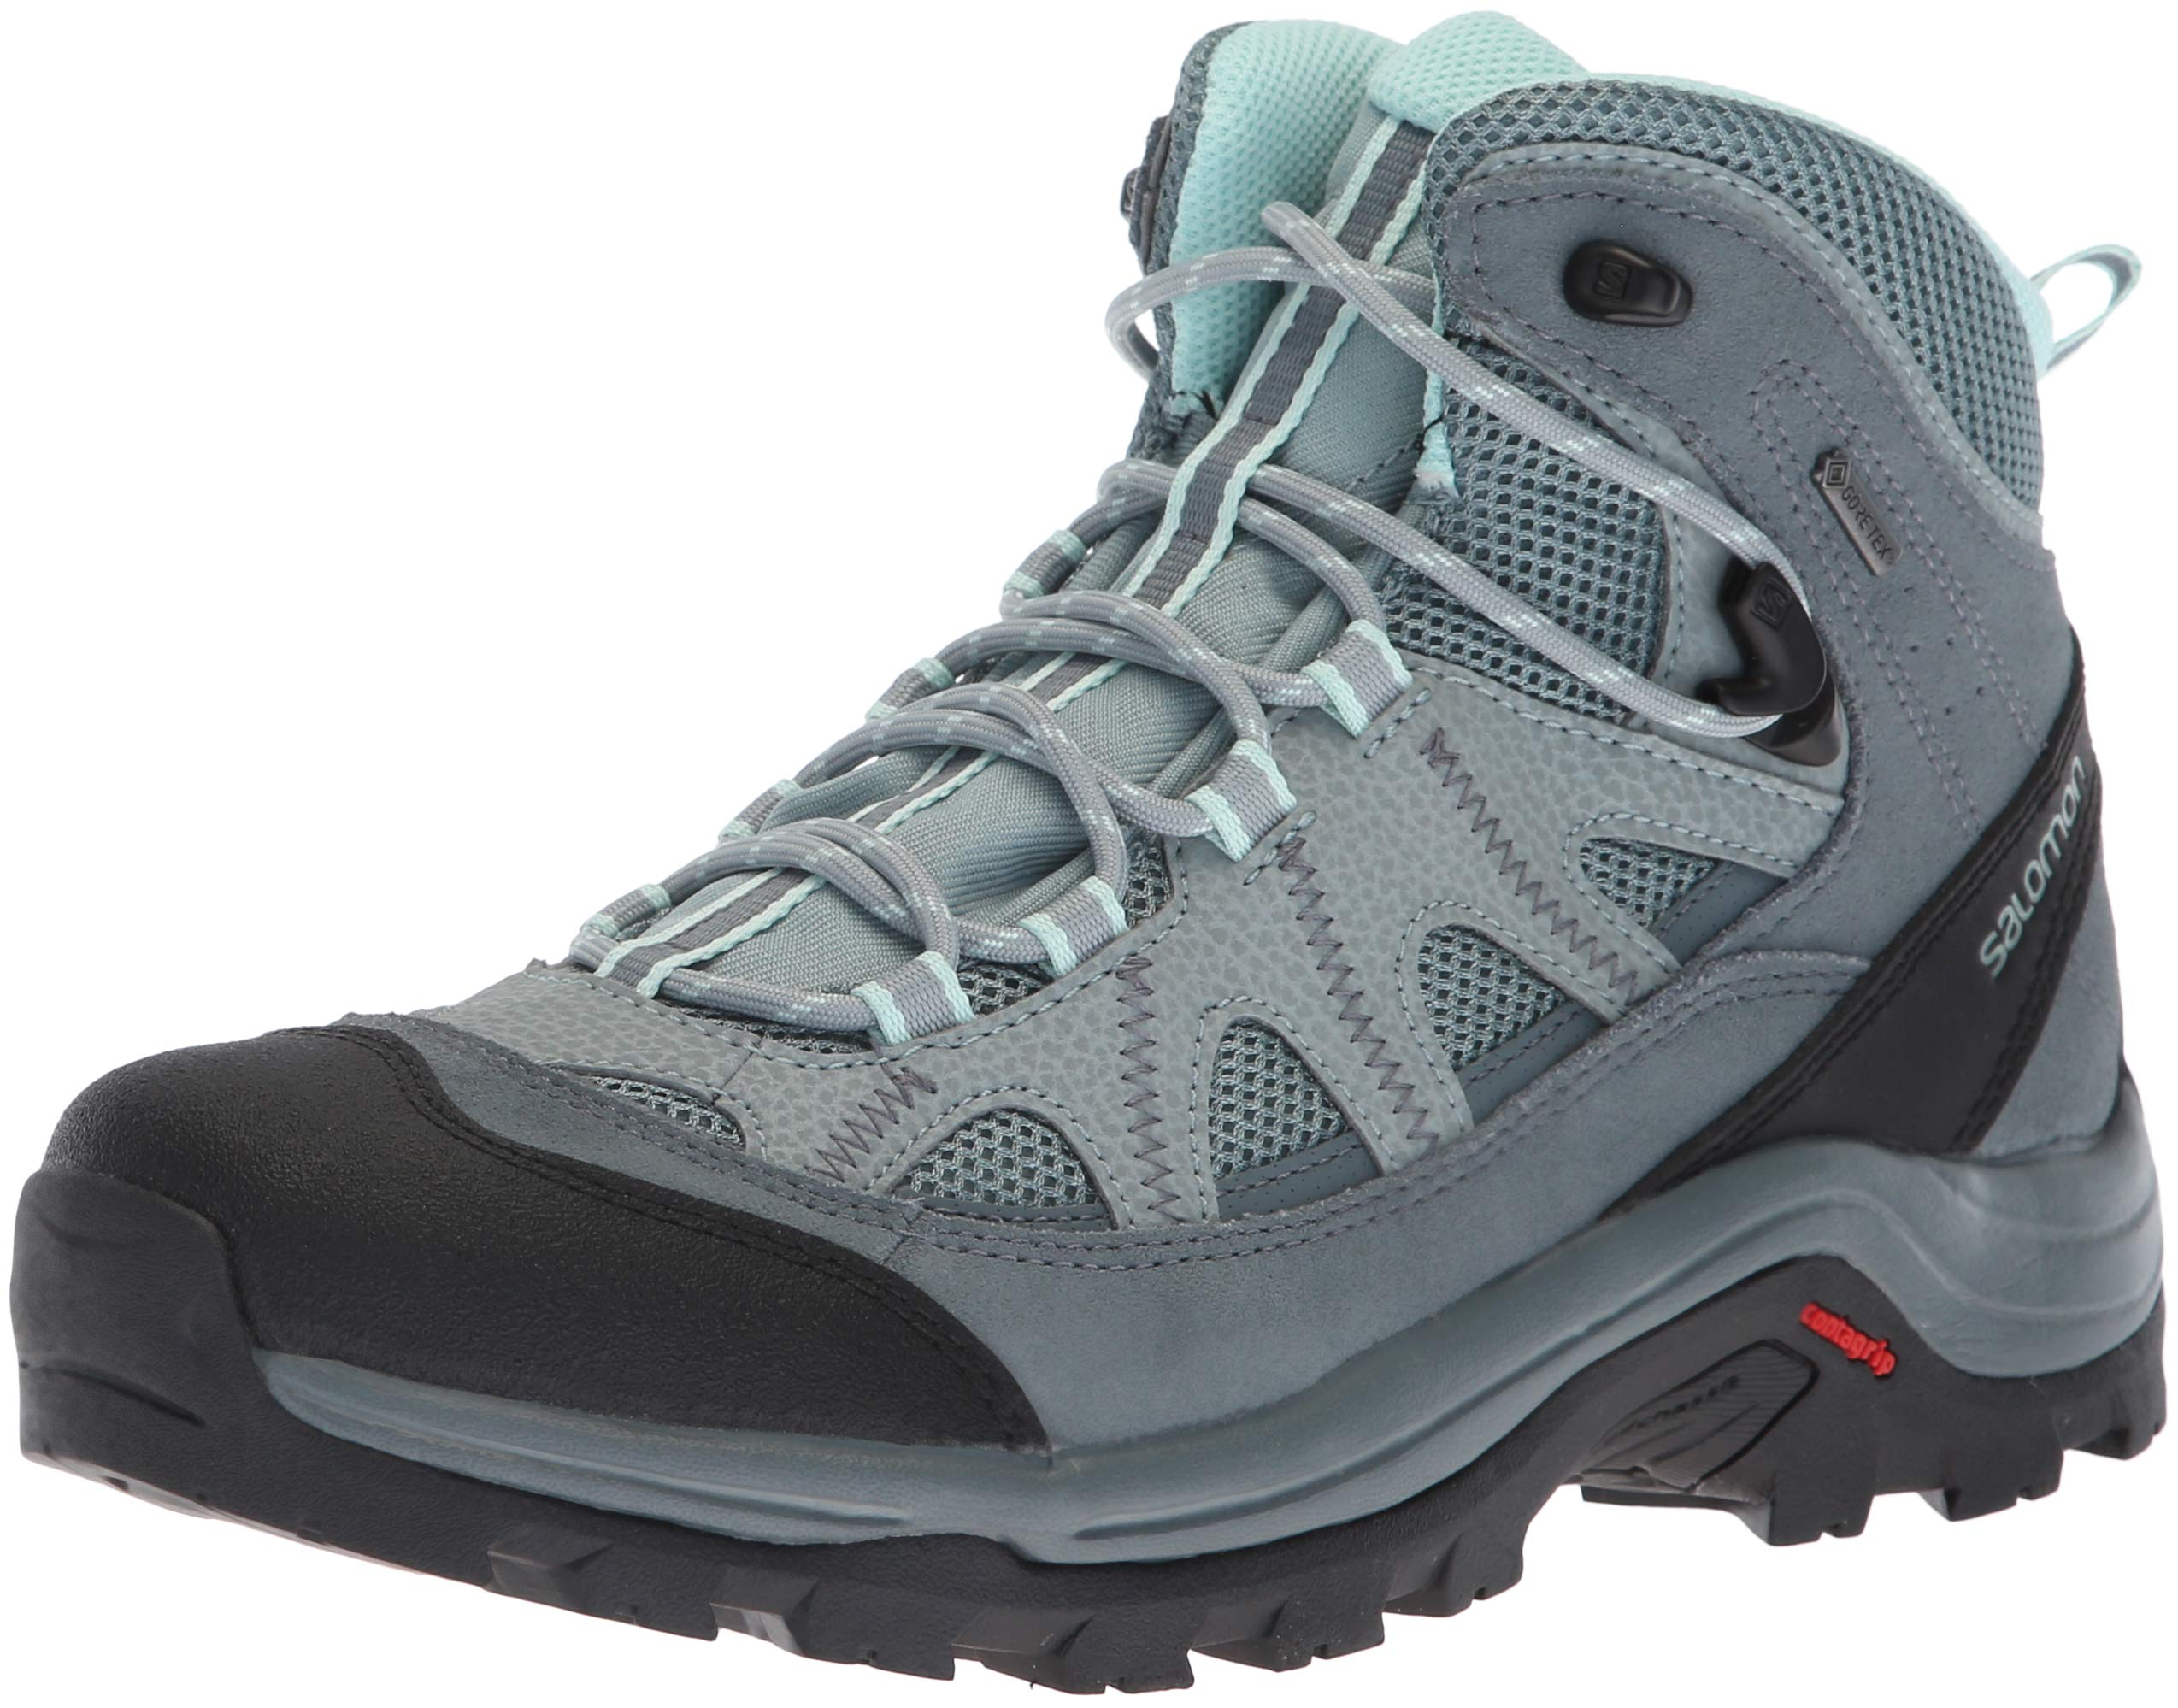 Salomon Women's Authentic LTR GTX W Backpacking Boot, Lead/Stormy Weather/Eggshell Blue, 7 B US